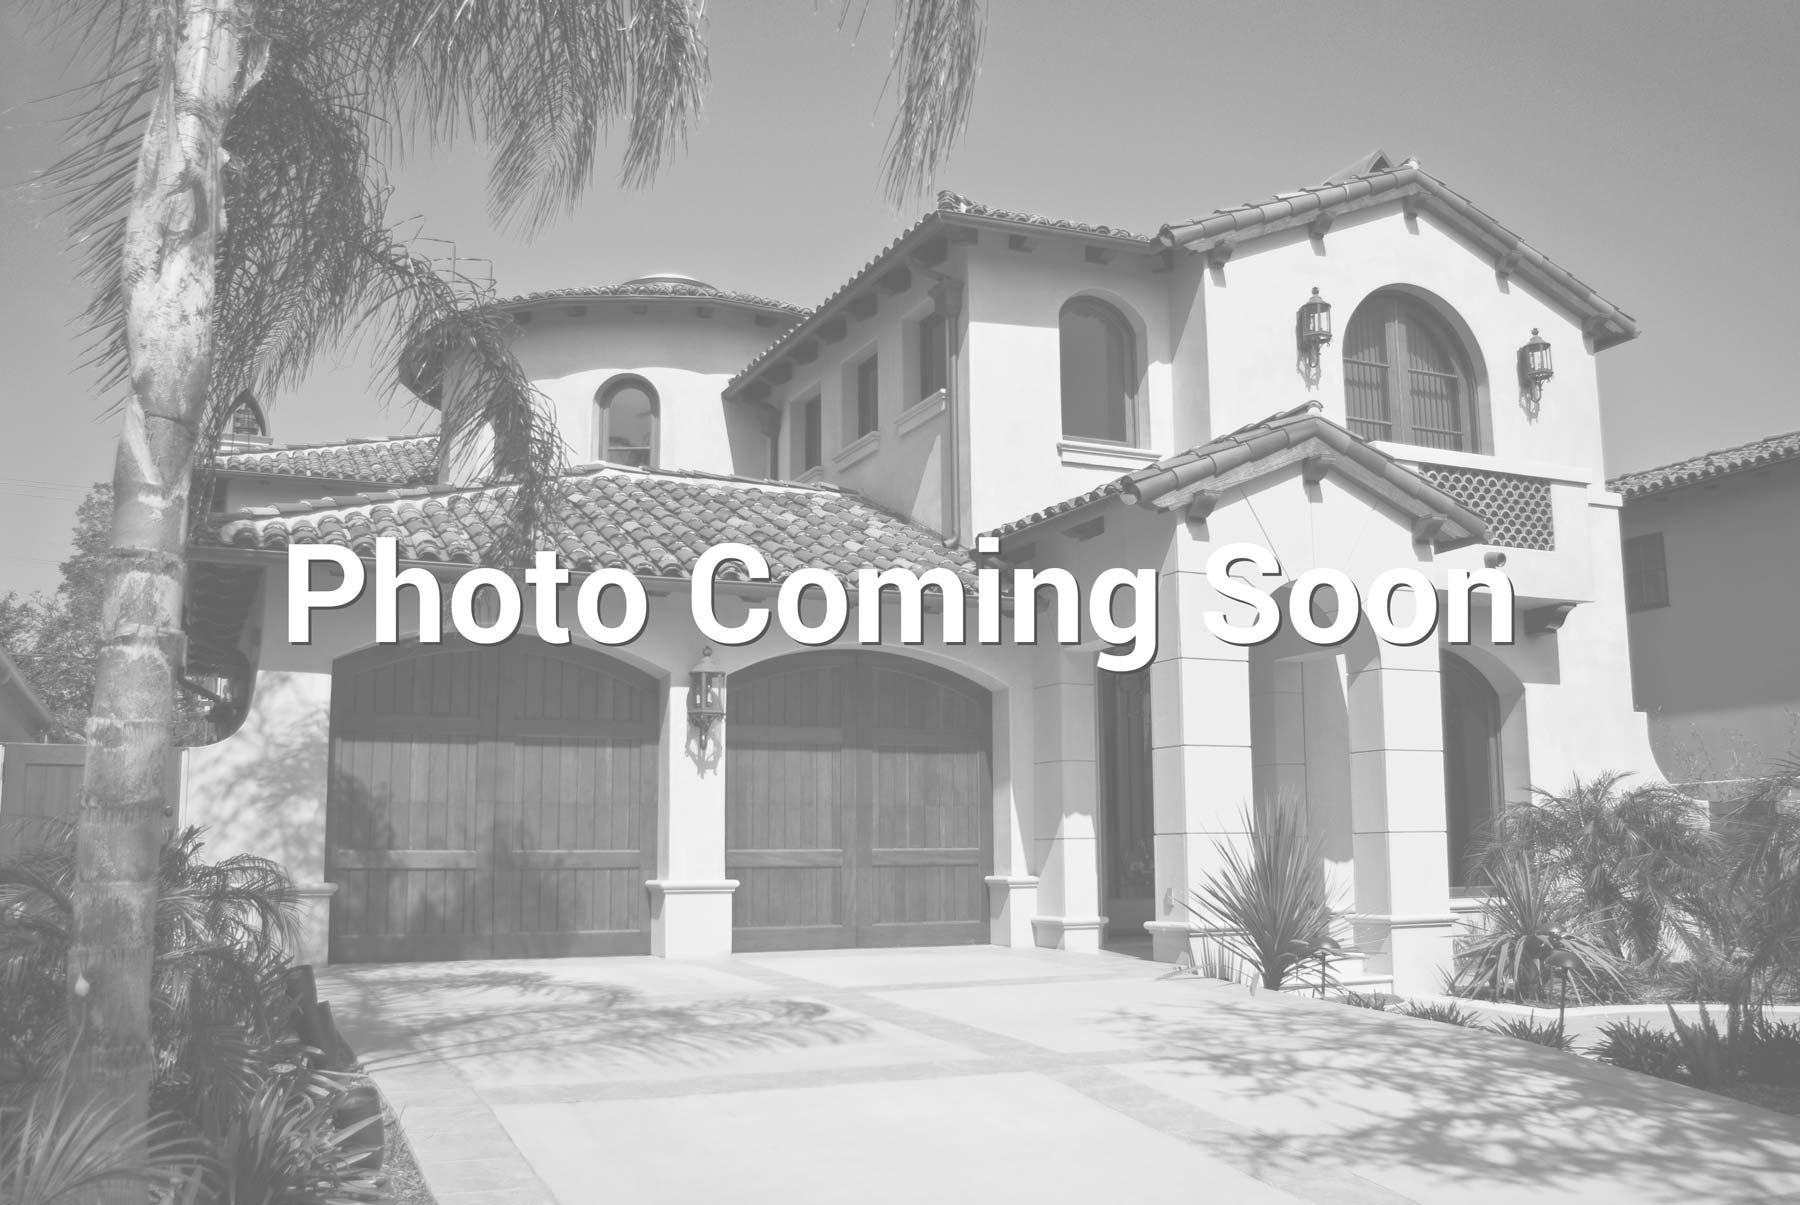 $589,900 - 4Br/3Ba - Home for Sale in Ironwood Village Parcel 4 Lot 1-69 Tr A, Scottsdale